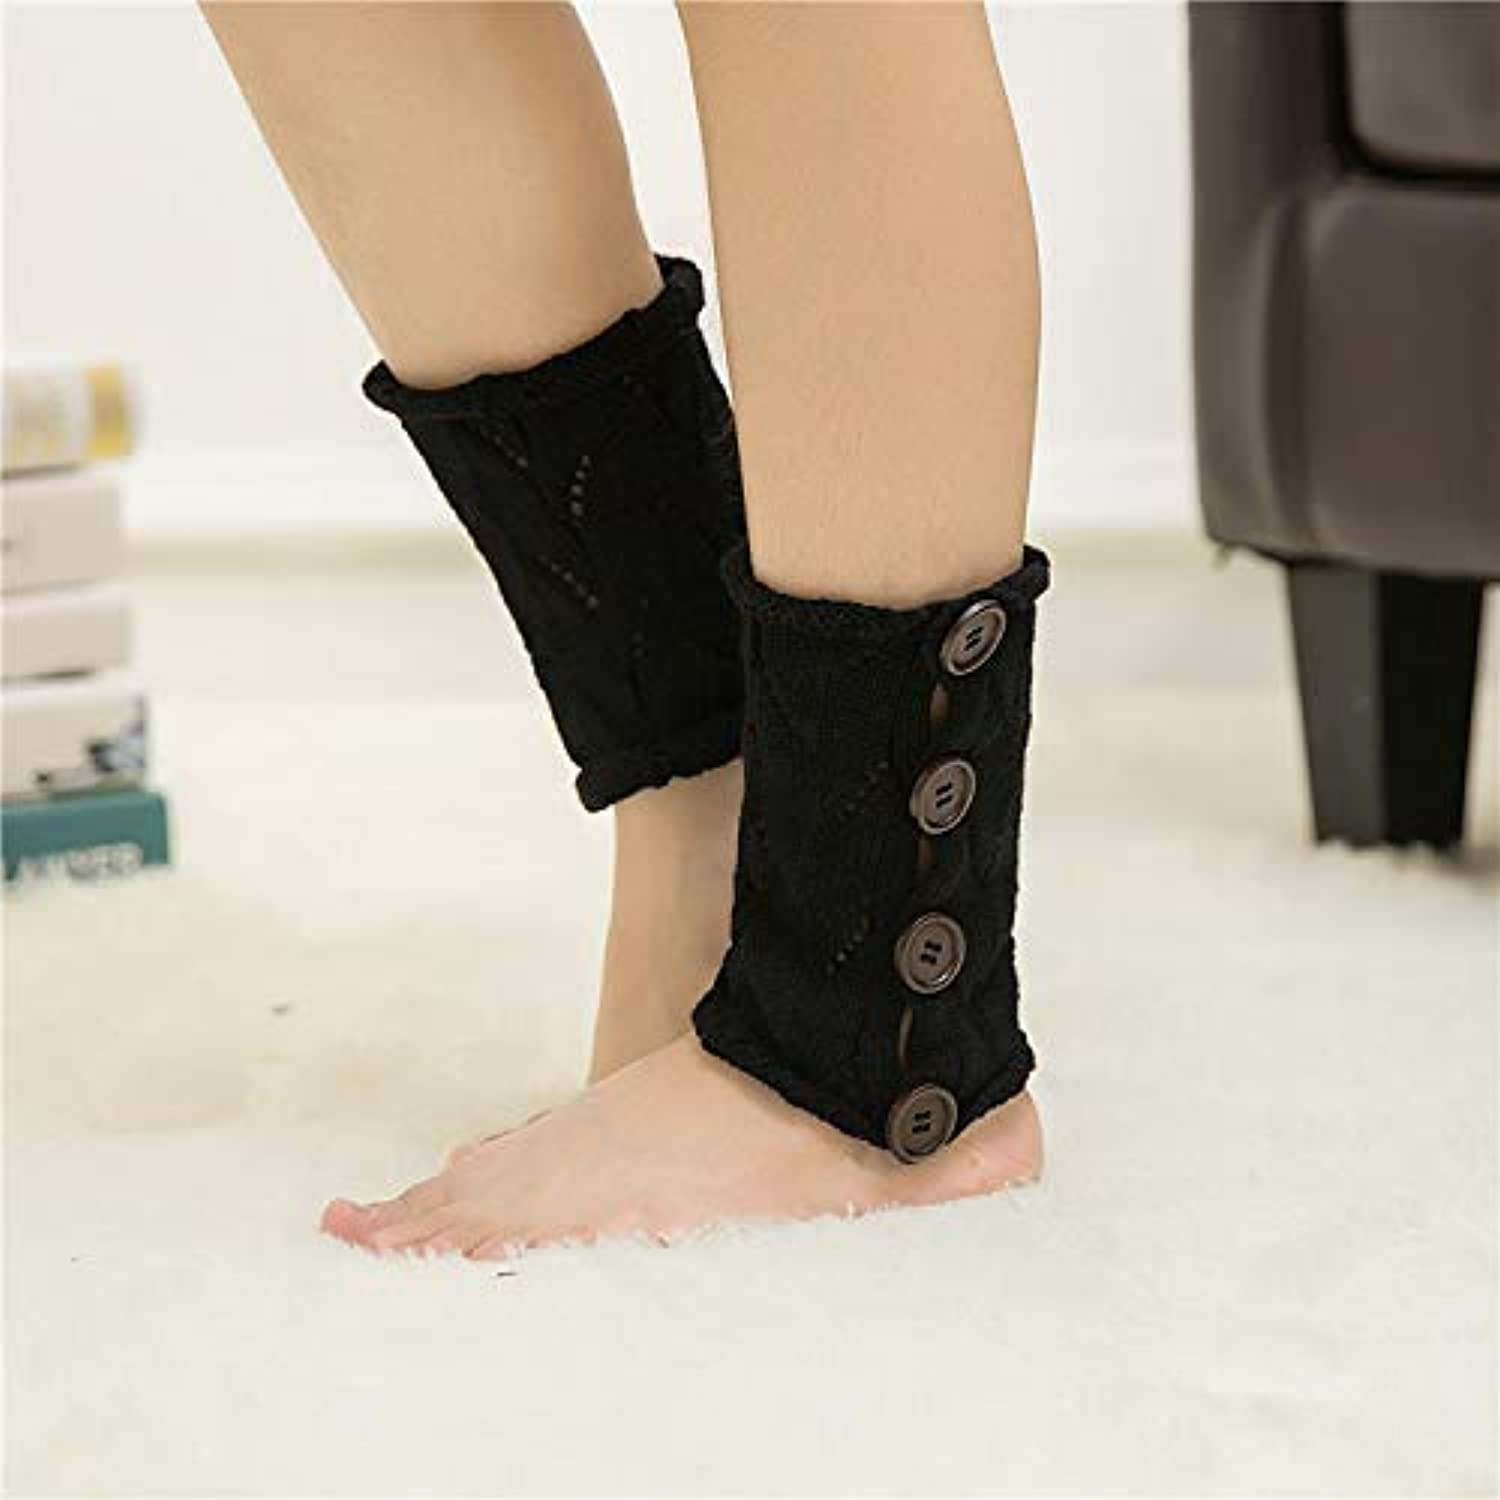 Winter Women Girls Autumn and Winter Socks, Female Acrylic, Four Buckles, Hollow Knee Pads, Sets of Thin Piles of Socks (color   Black) Leg Warmers